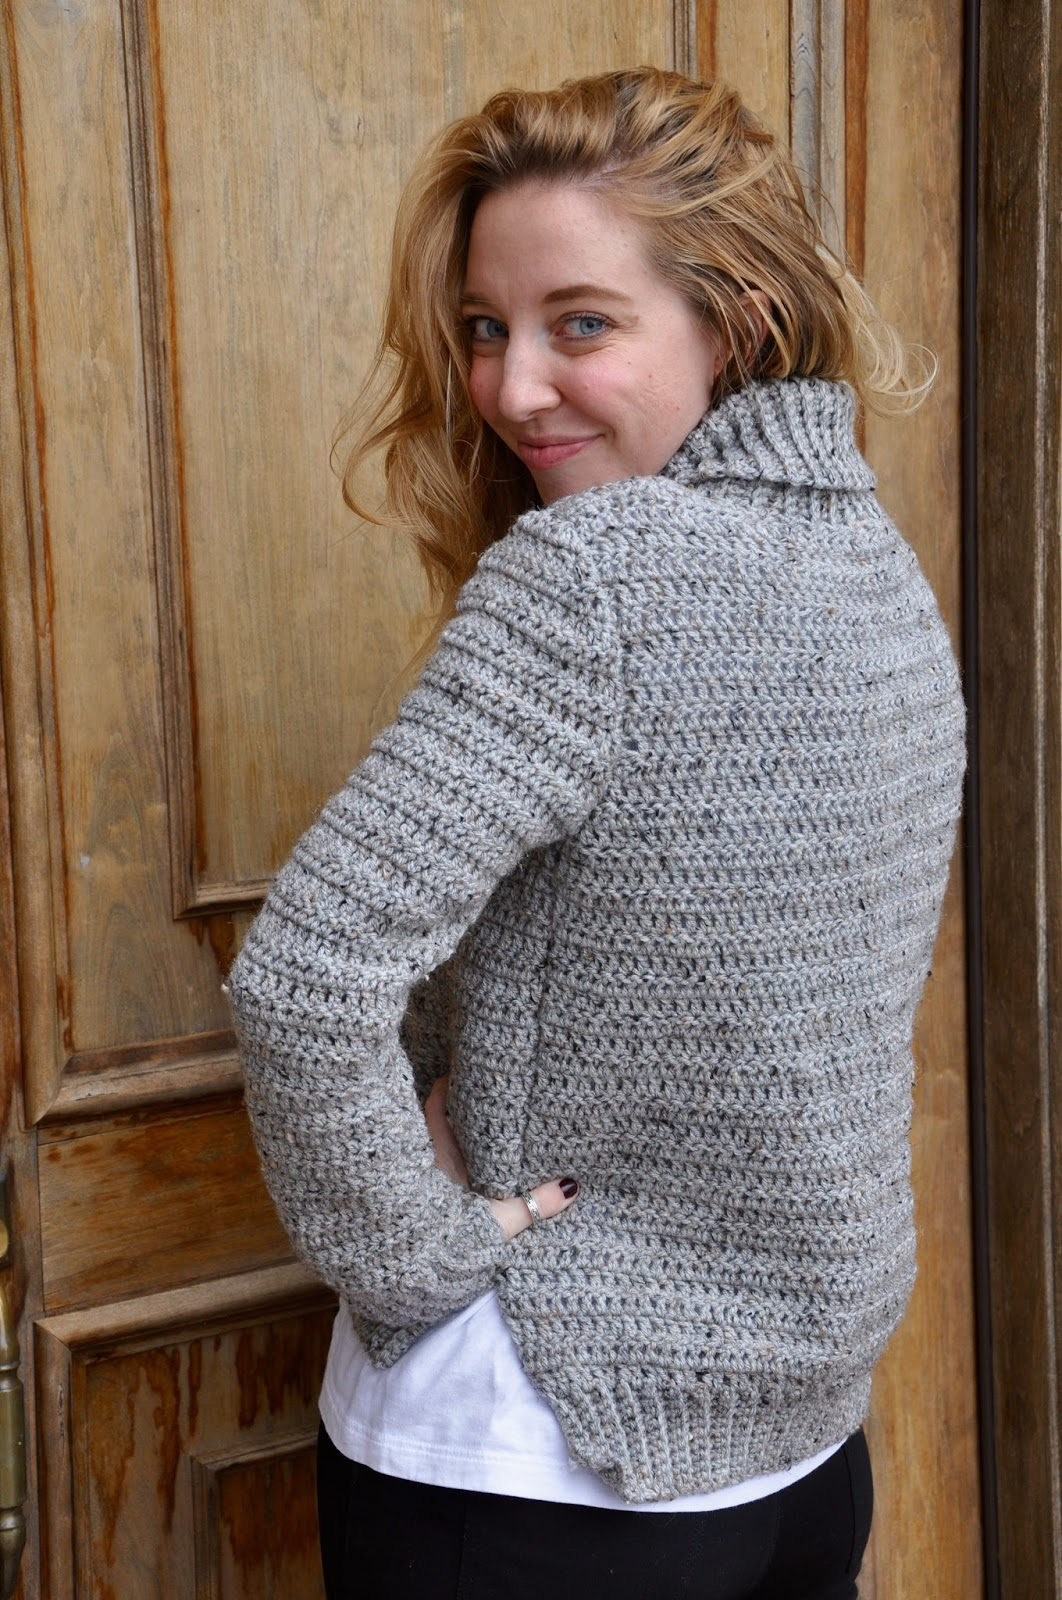 444aa188ccf05f Sans Limites Crochet  Cable Turtleneck Sweater! Finally! A New ...